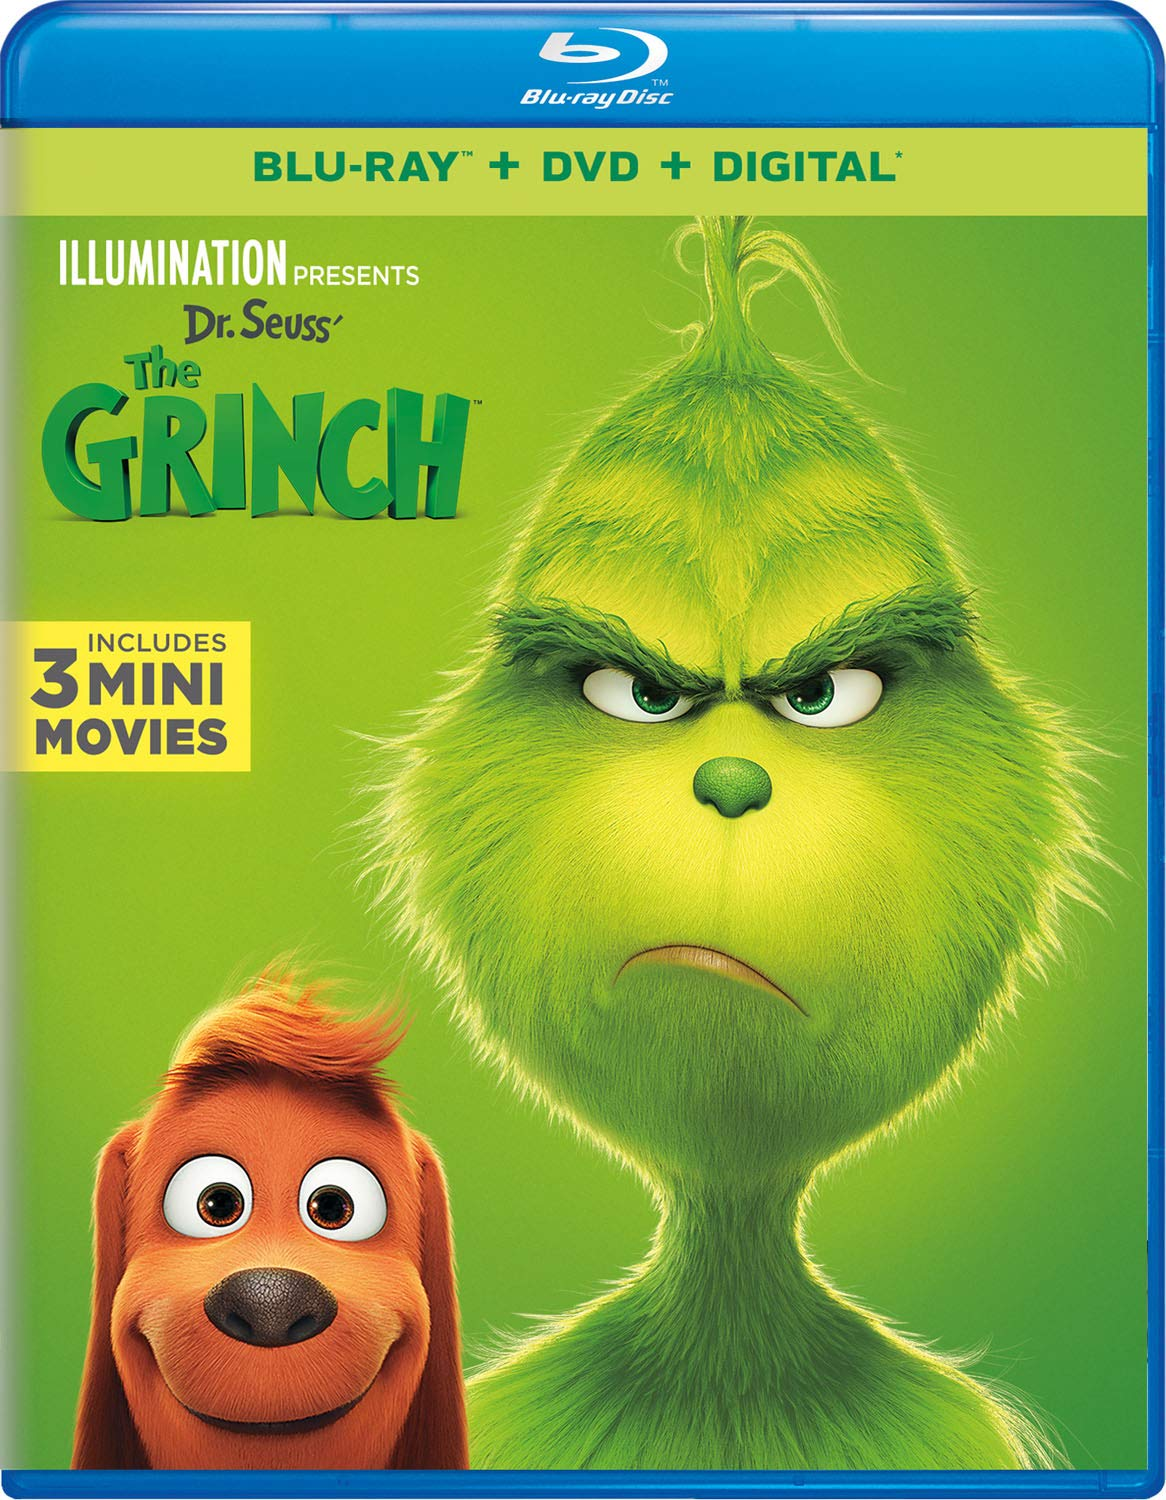 The Grinch (Blu-ray/DVD) | Twilight Sparkle's Media Library